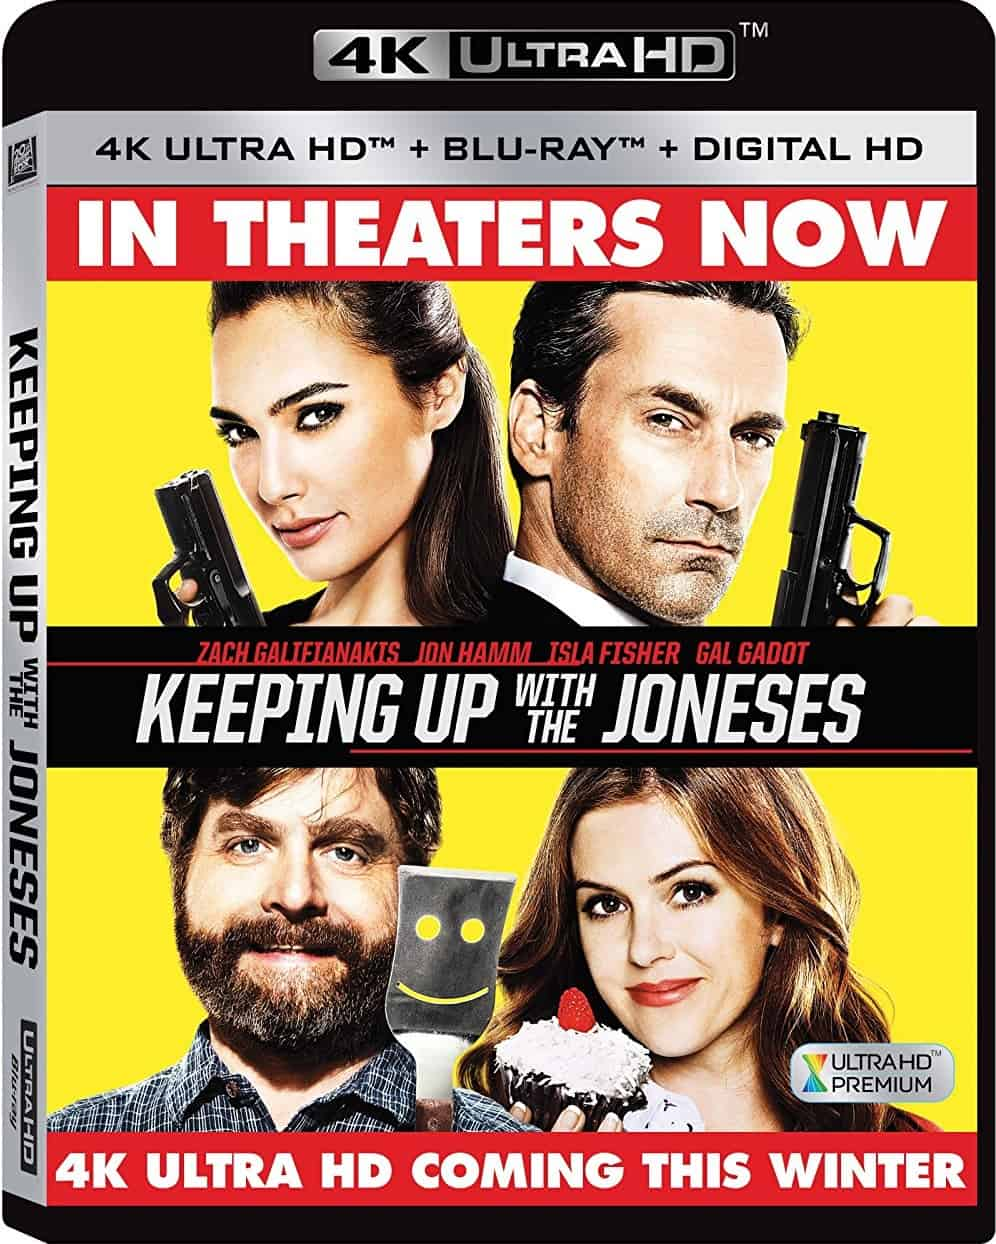 Keeping Up with the Joneses 4K RIP 2016 Ultra HD 2160p